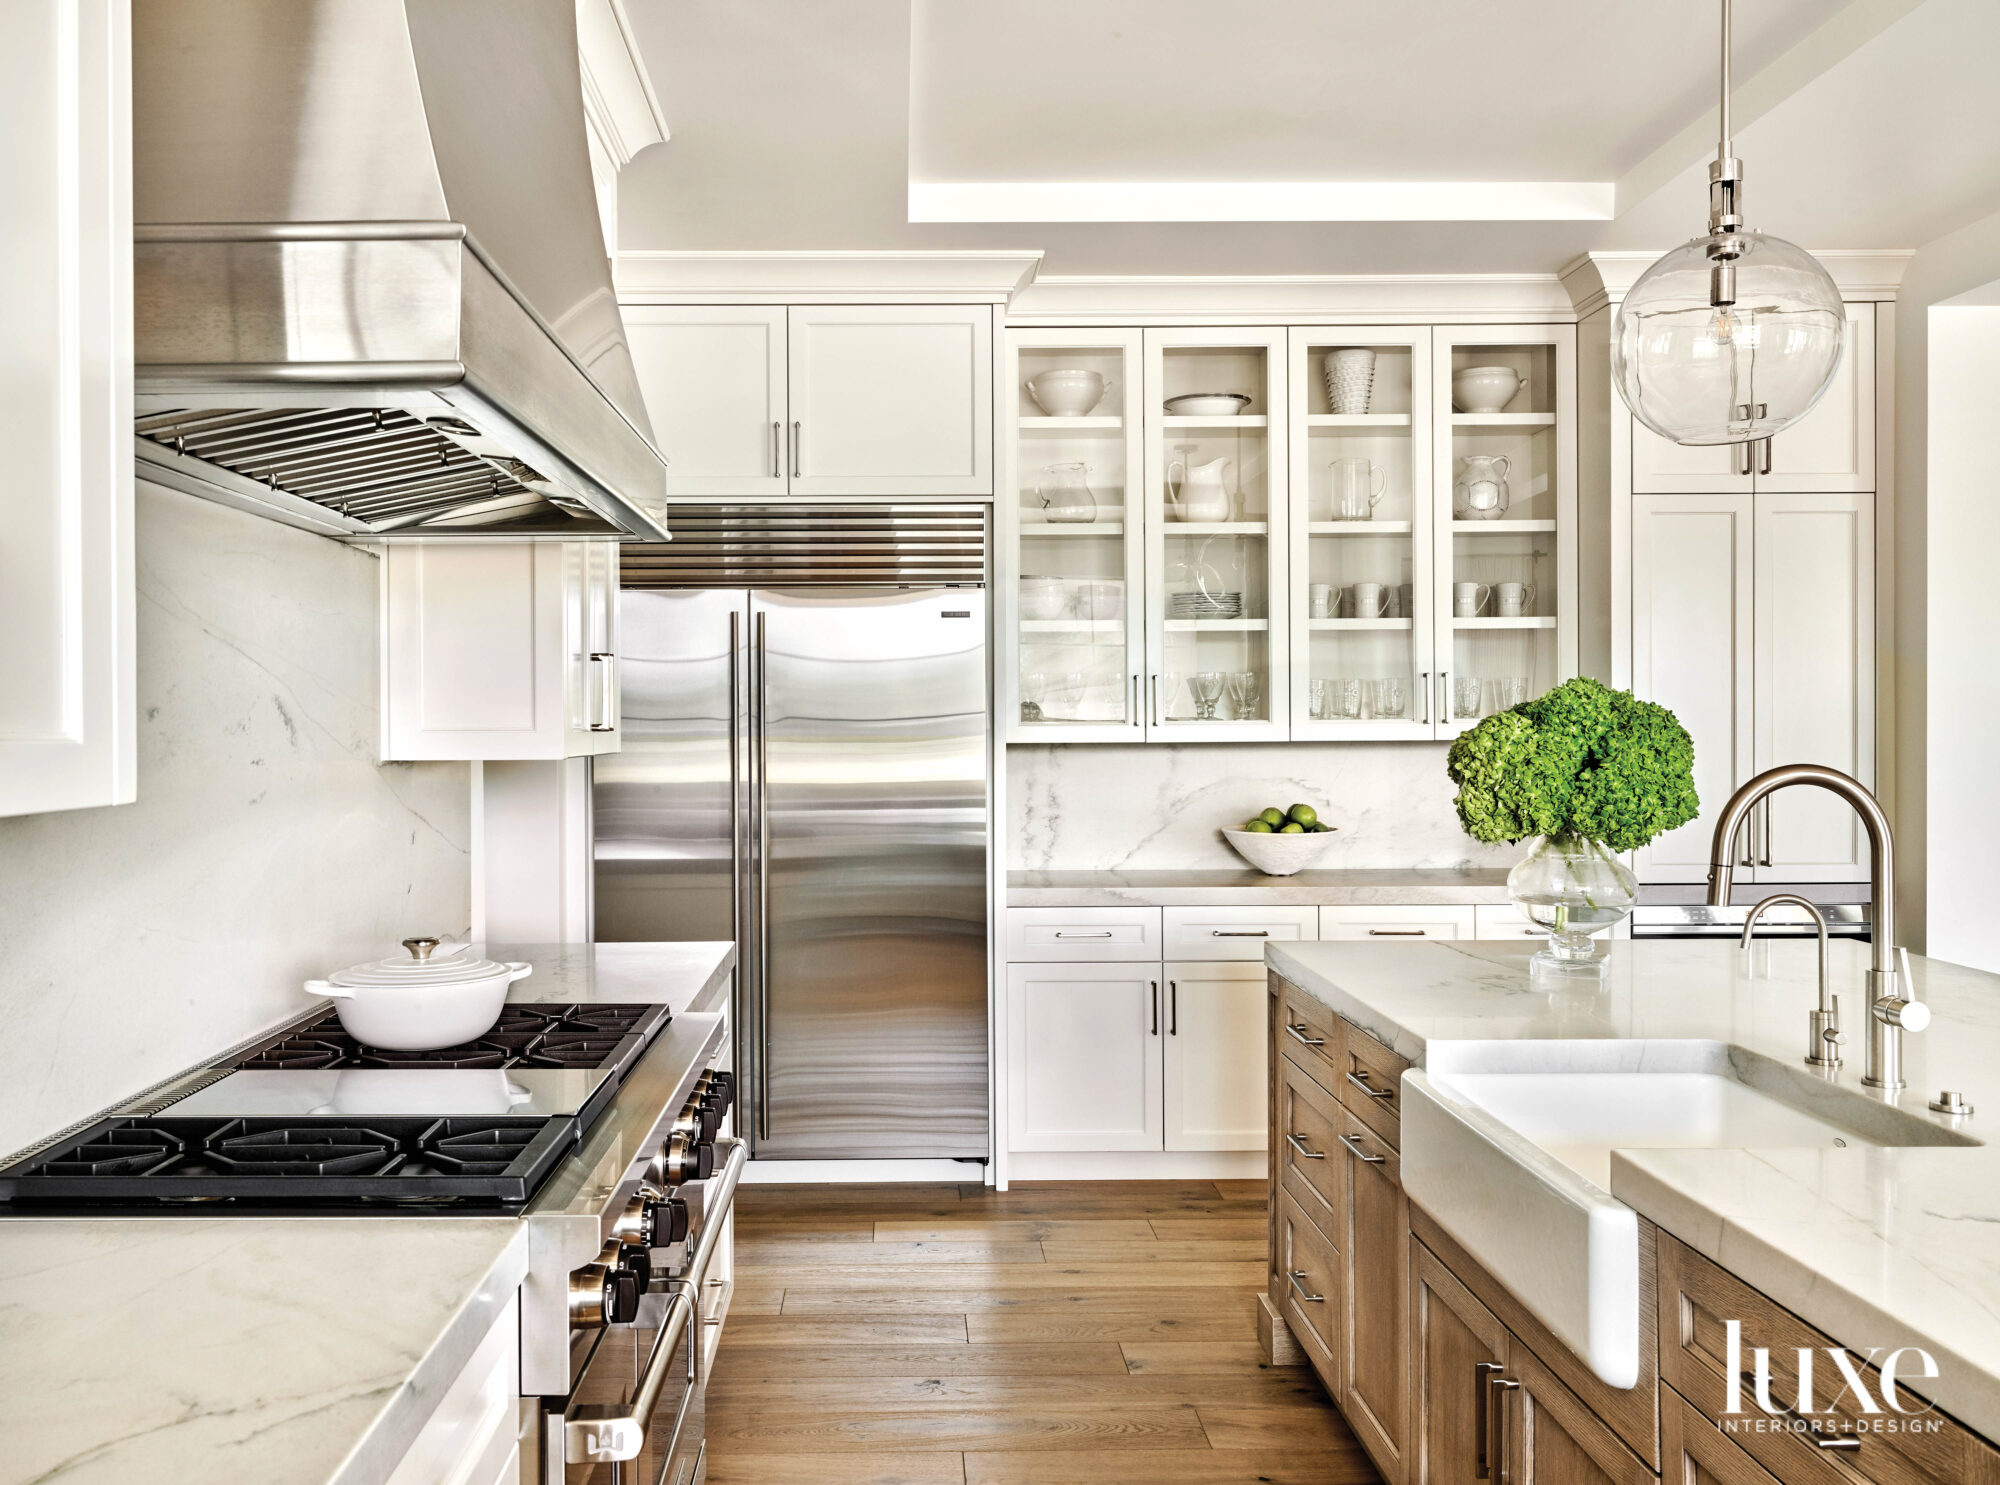 The kitchen has marble countertops and a farmhouse sink.